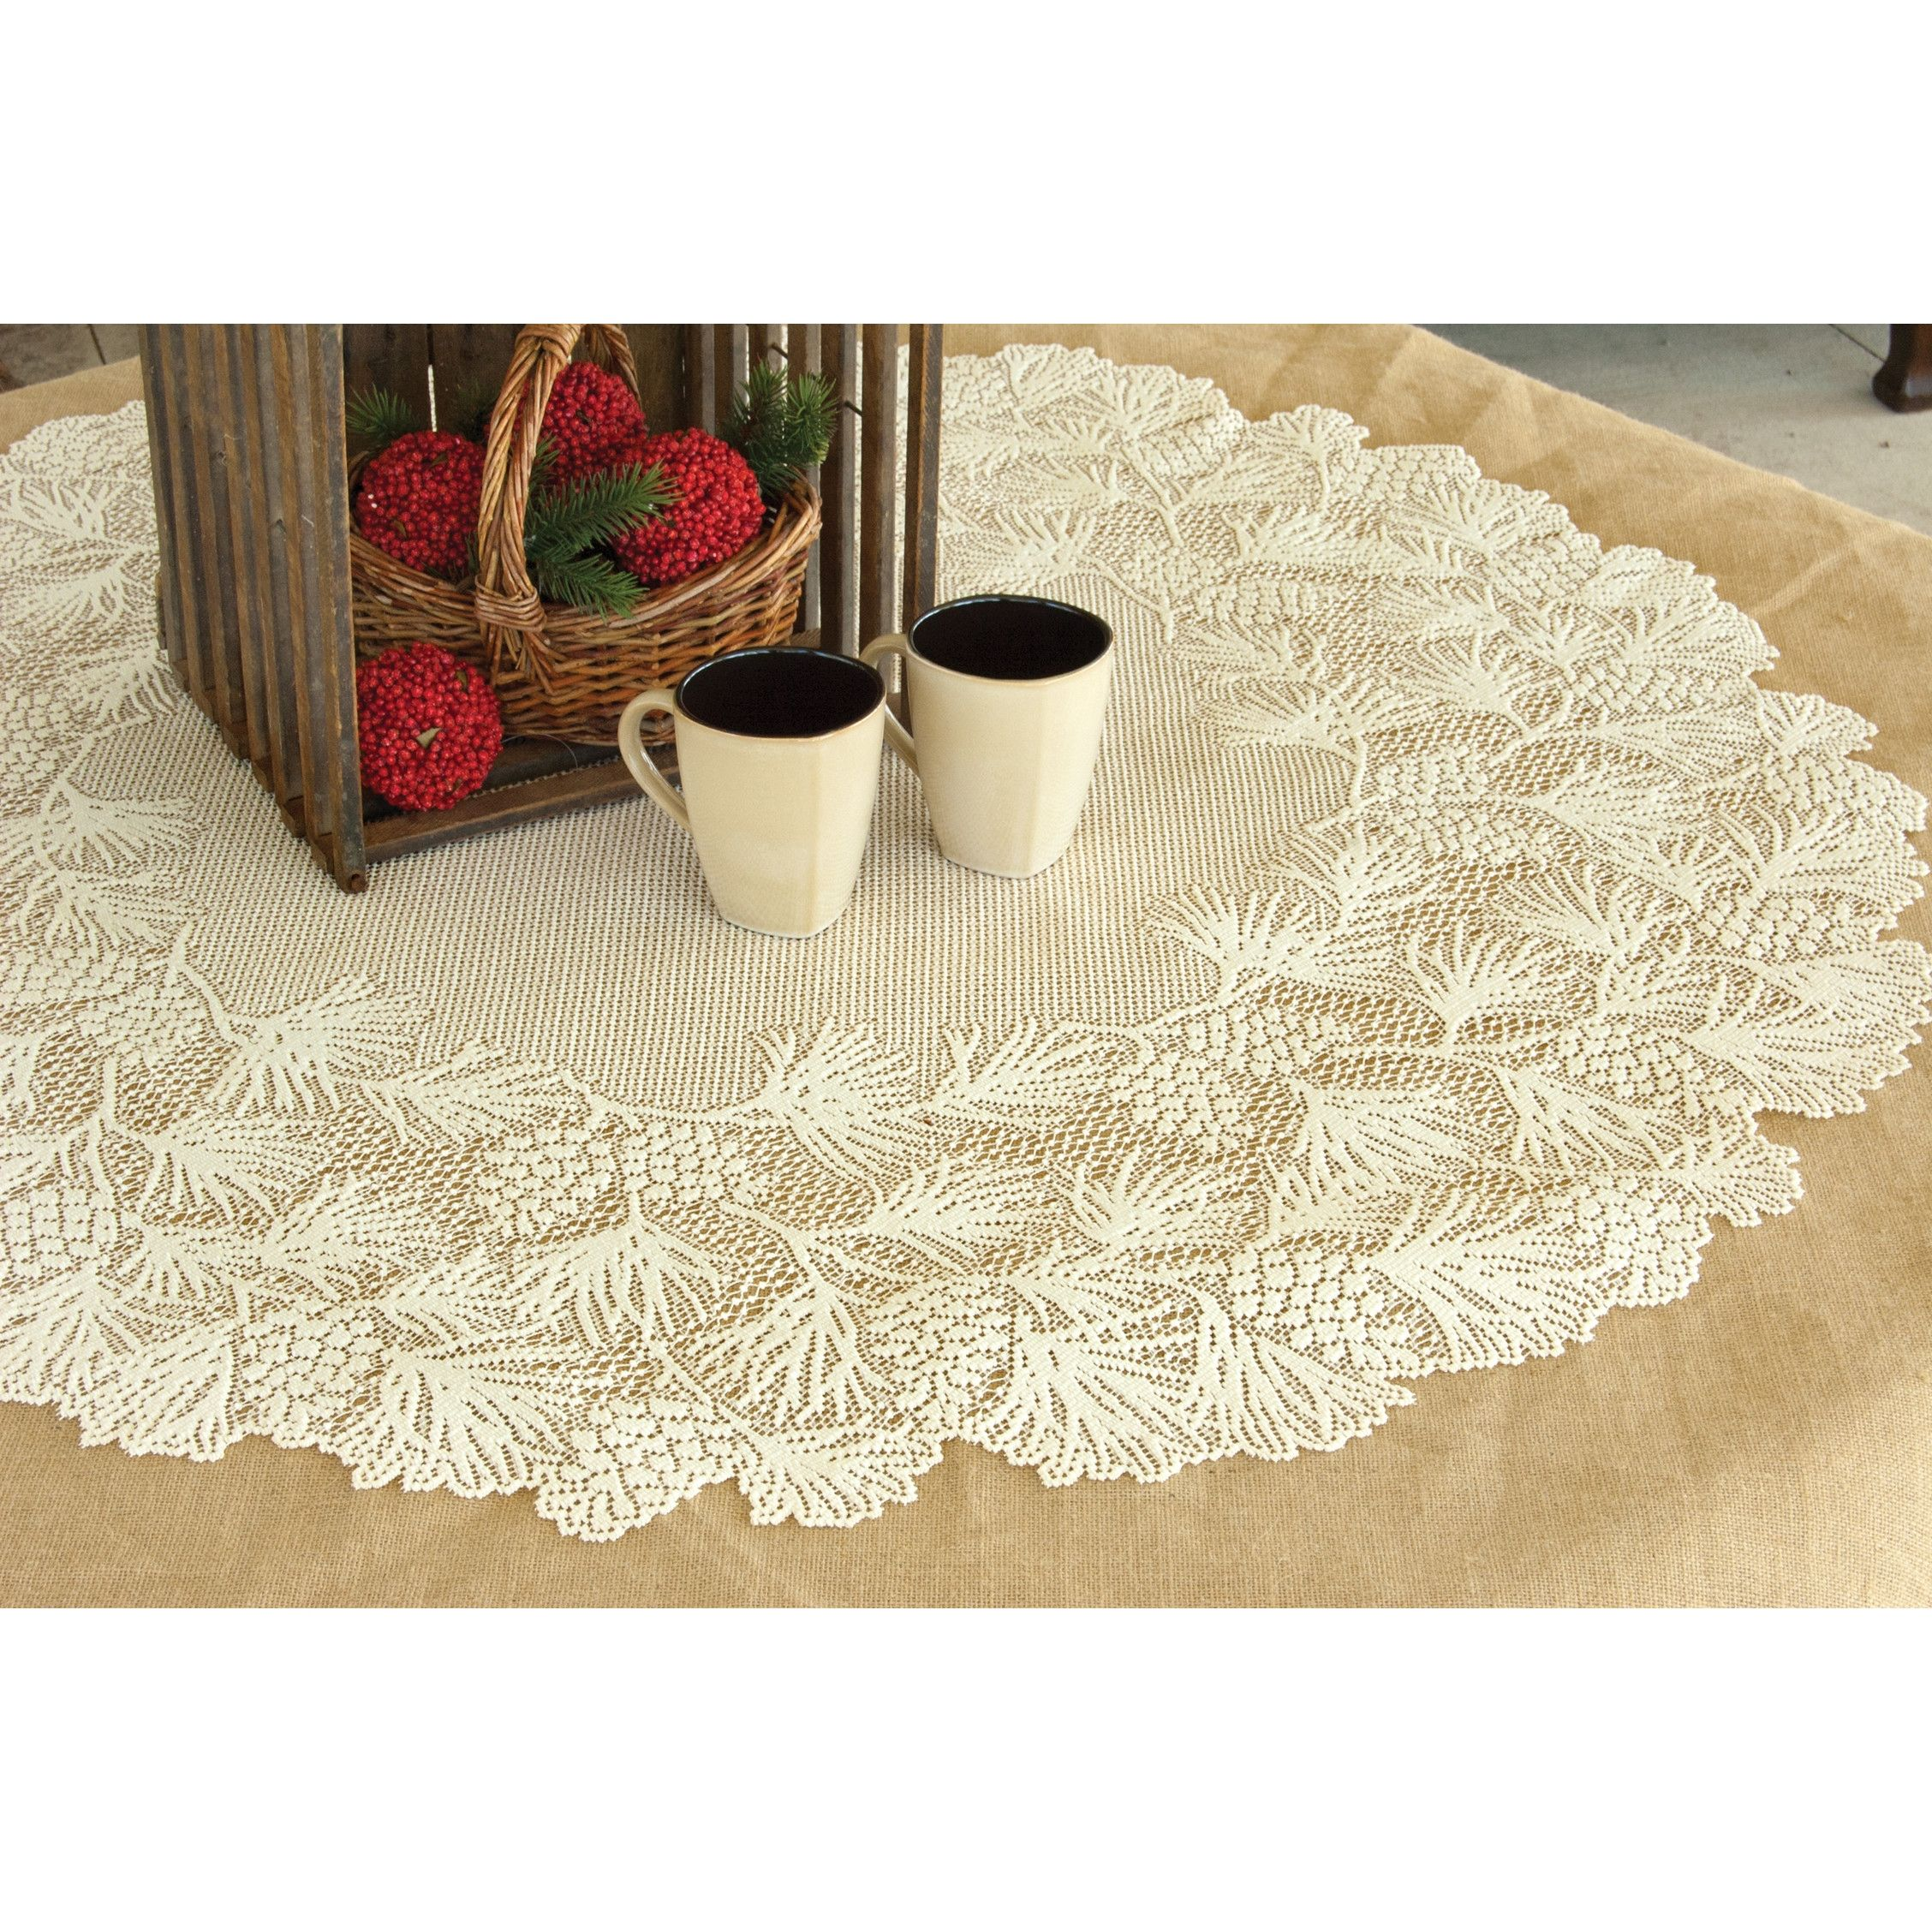 Dining Room Table Toppers Mesmerizing Round Lace Table Toppers  Httpargharts  Pinterest  Lace Review